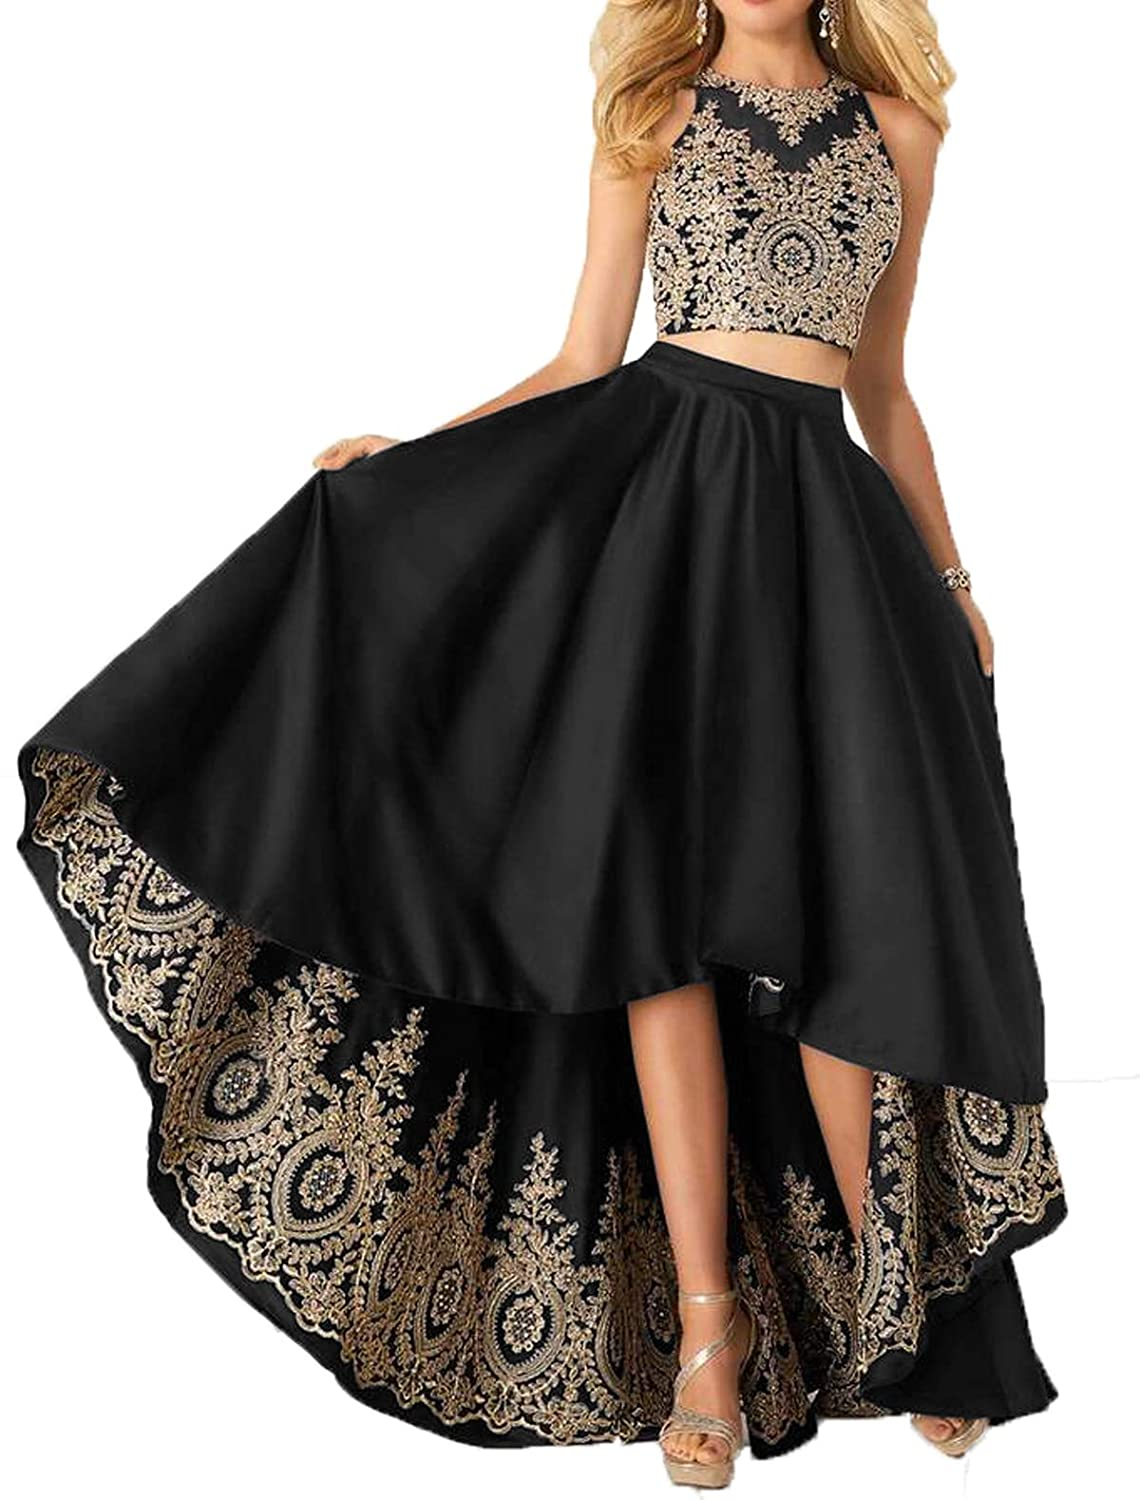 Black Udresses Two Piece Homecoming Satin Dress Aline Applique Lace Formal Prom Gowns